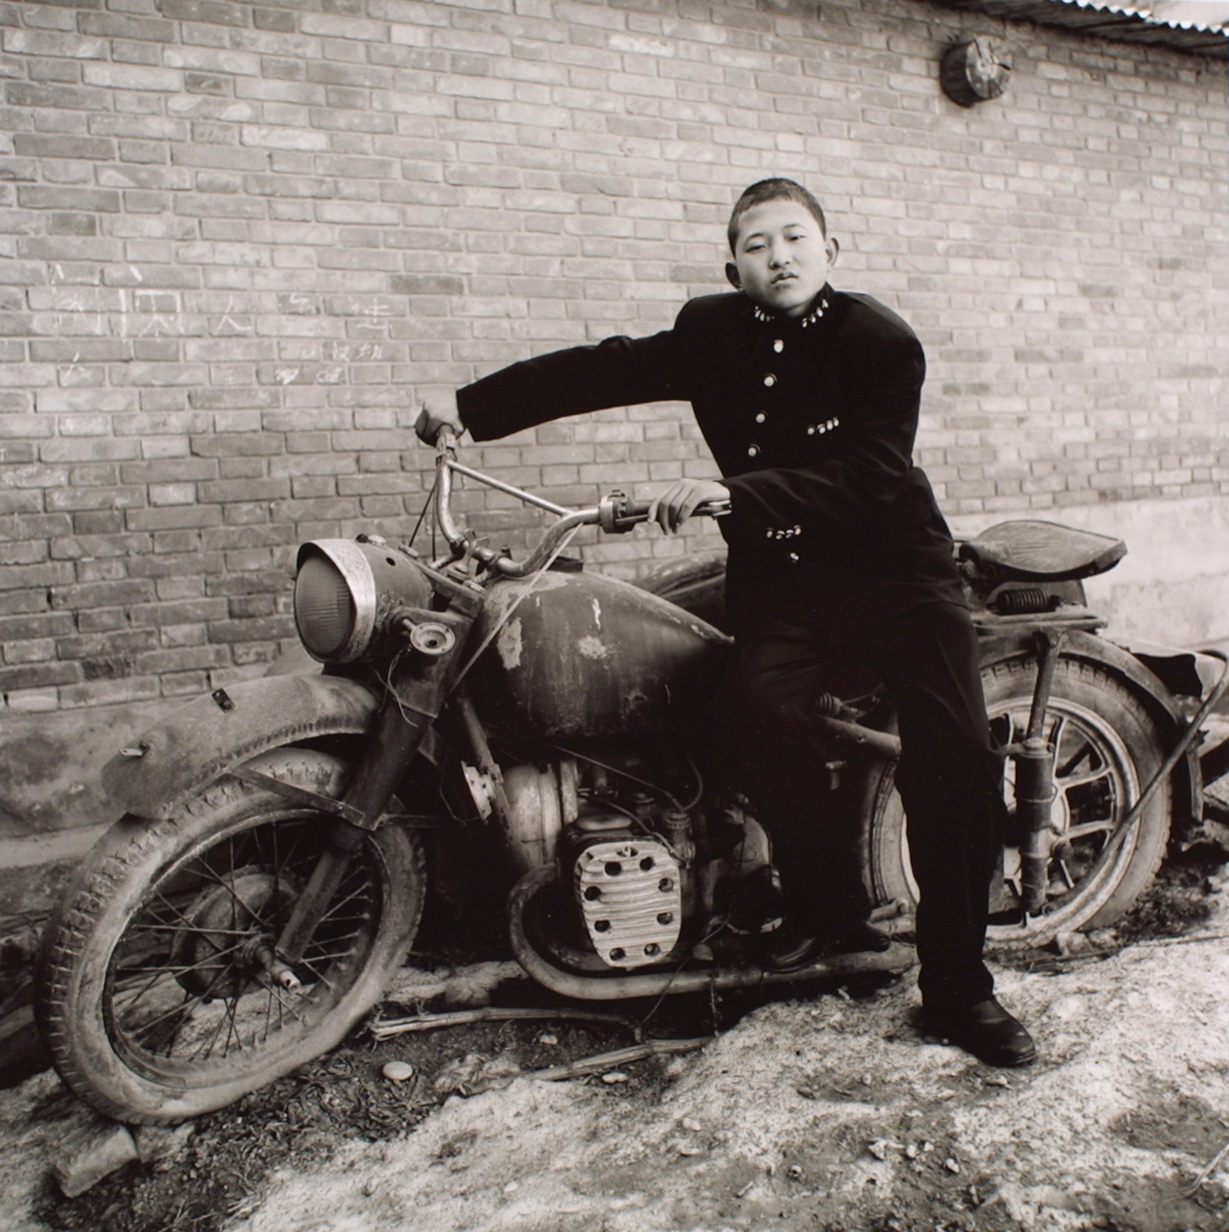 A Rural Boy In School Uniform, Fengxiang, Shaanxi Province, 2000, Gelatin silver print